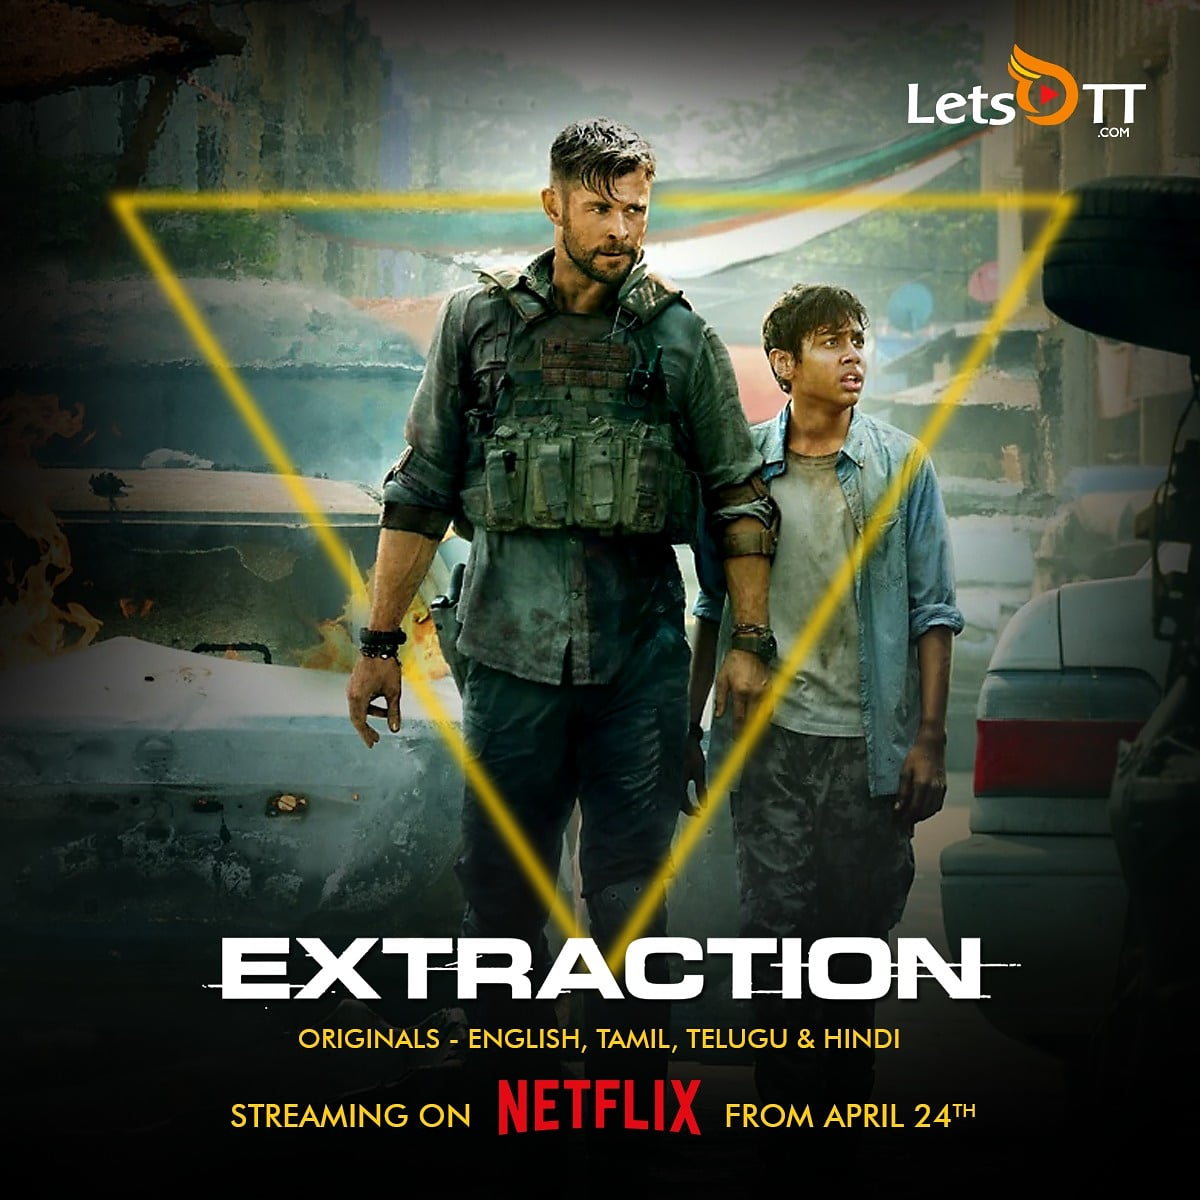 Letsott Global On Twitter Premier Alert Netflix Original Film Extraction Ft Chrishemsworth Will Stream In English Tamil Telugu And Hindi From April 24th 12 00 Am 12 30 Pm